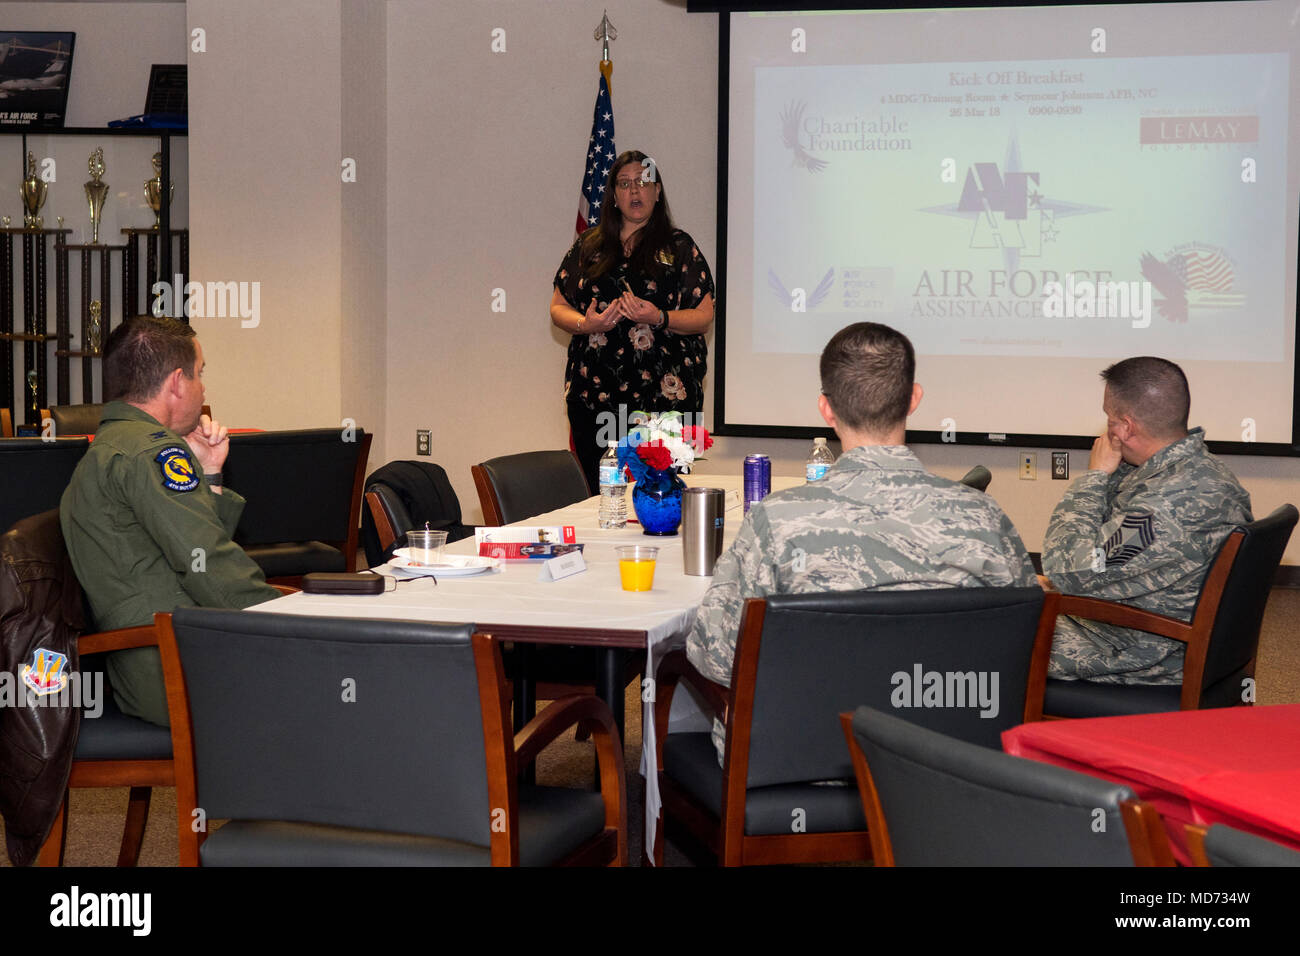 Dawn Allen, 4th Force Support Squadron Airman and Family Readiness Center community readiness specialist, talks to leadership about the Air Force Assistance Fund campaign, March 26, 2018, at Seymour Johnson Air Force Base, North Carolina. The AFAF supports the General and Mrs. Curtis E. LeMay Foundation, Air Force Enlisted Village, Air Force Village Charitable Foundation, and the Air Force Aid Society. (U.S. Air Force photo by Airman 1st Class Shawna L. Keyes) - Stock Image